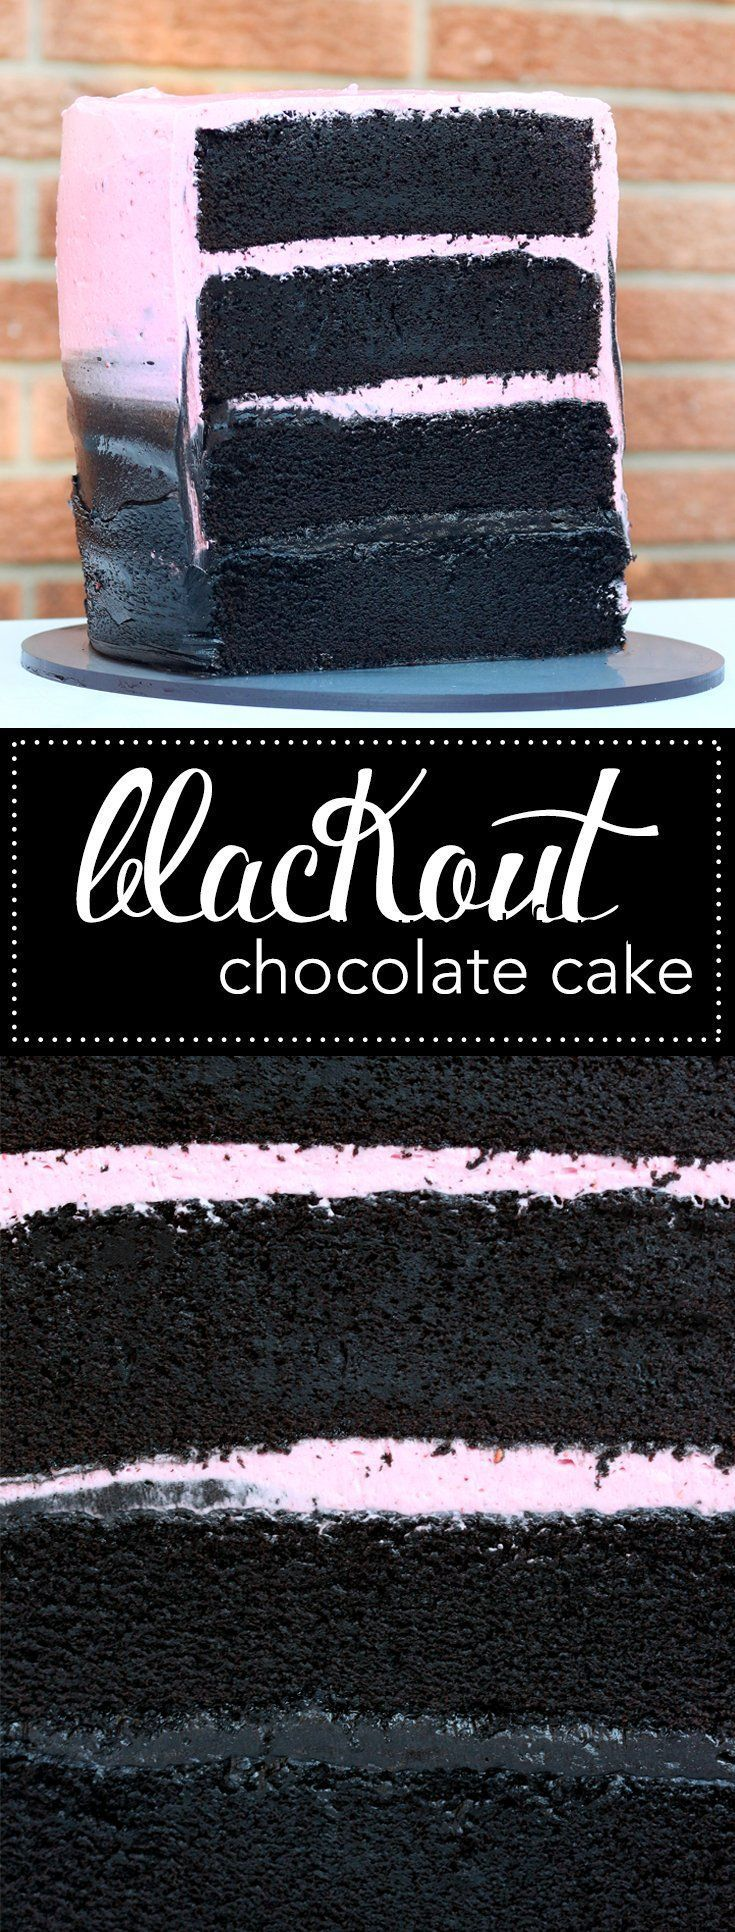 Blackout Chocolate Cake. This recipe features cocoa noir, the darkest cocoa powder available. Try this easy recipe and you'll never go back to your old chocolate cake again.